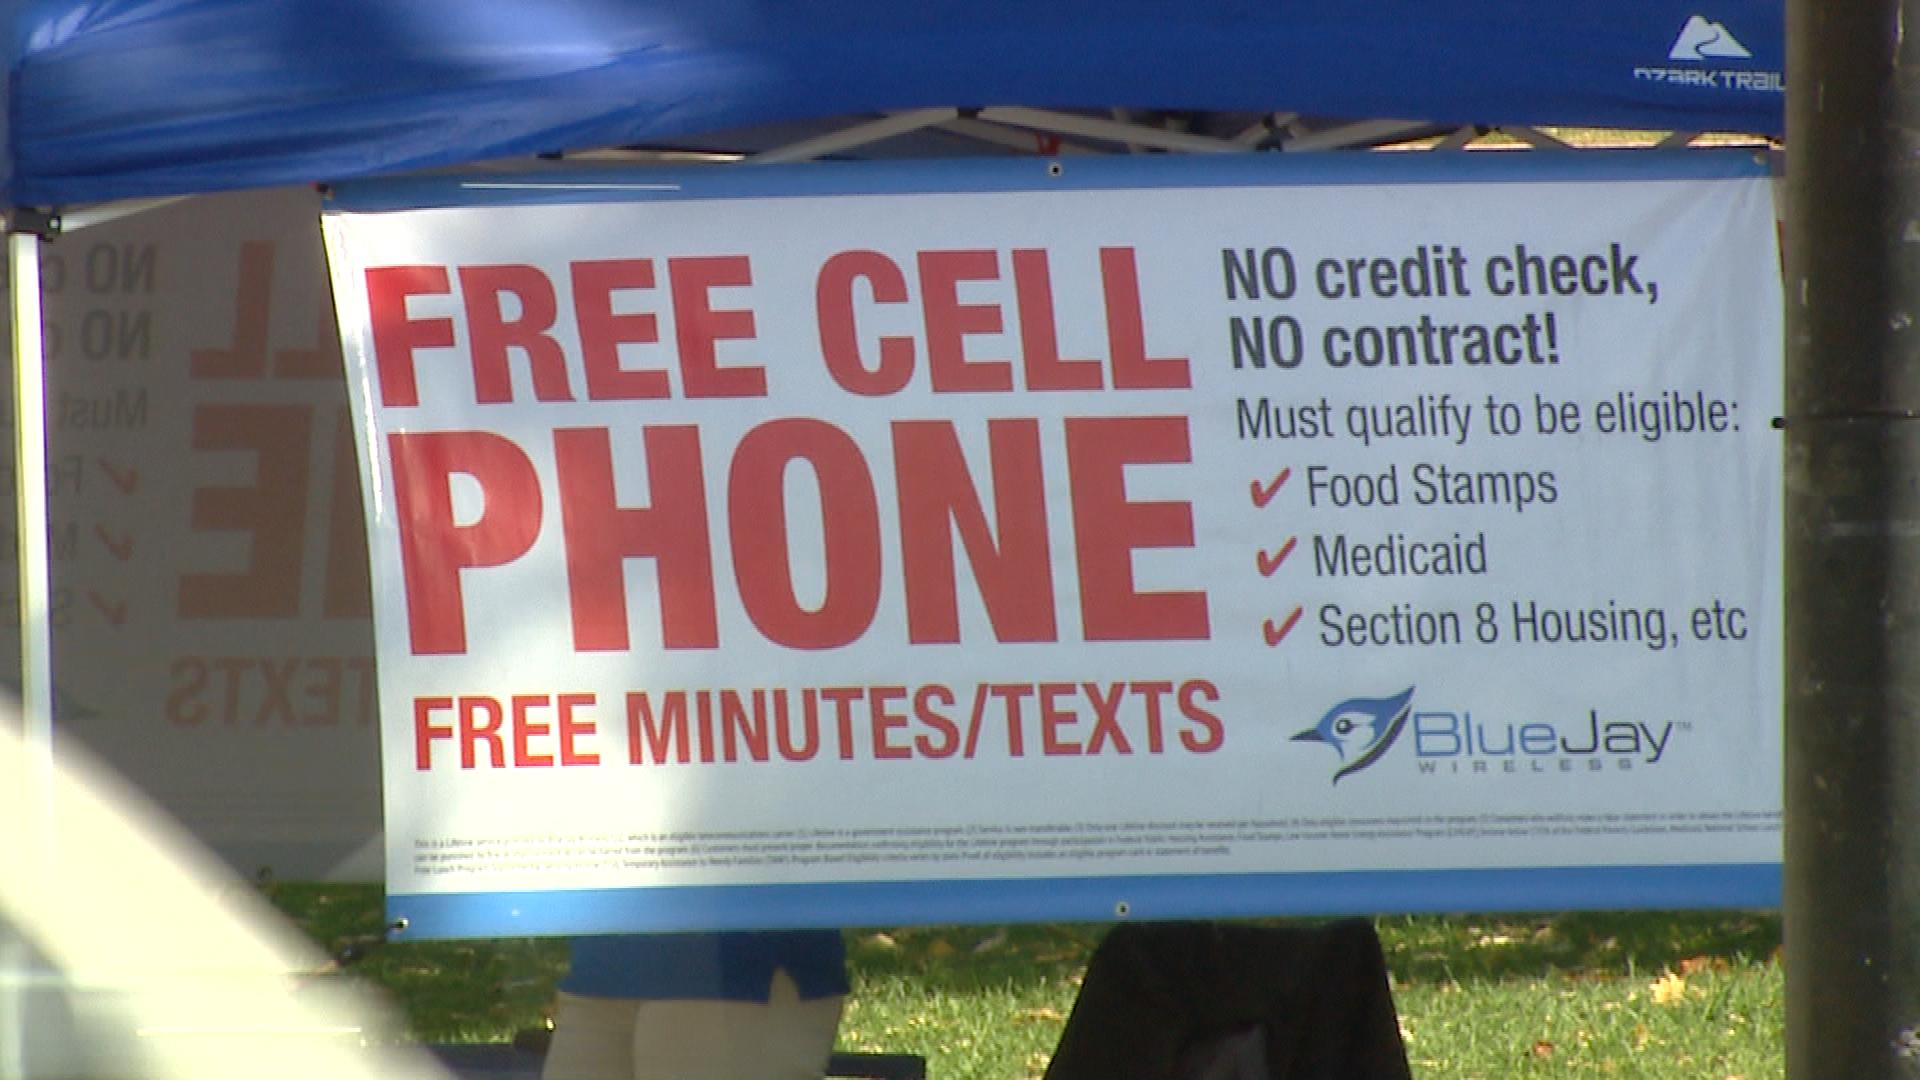 Banners promote free phones under the Lifeline program. (credit: CBS)